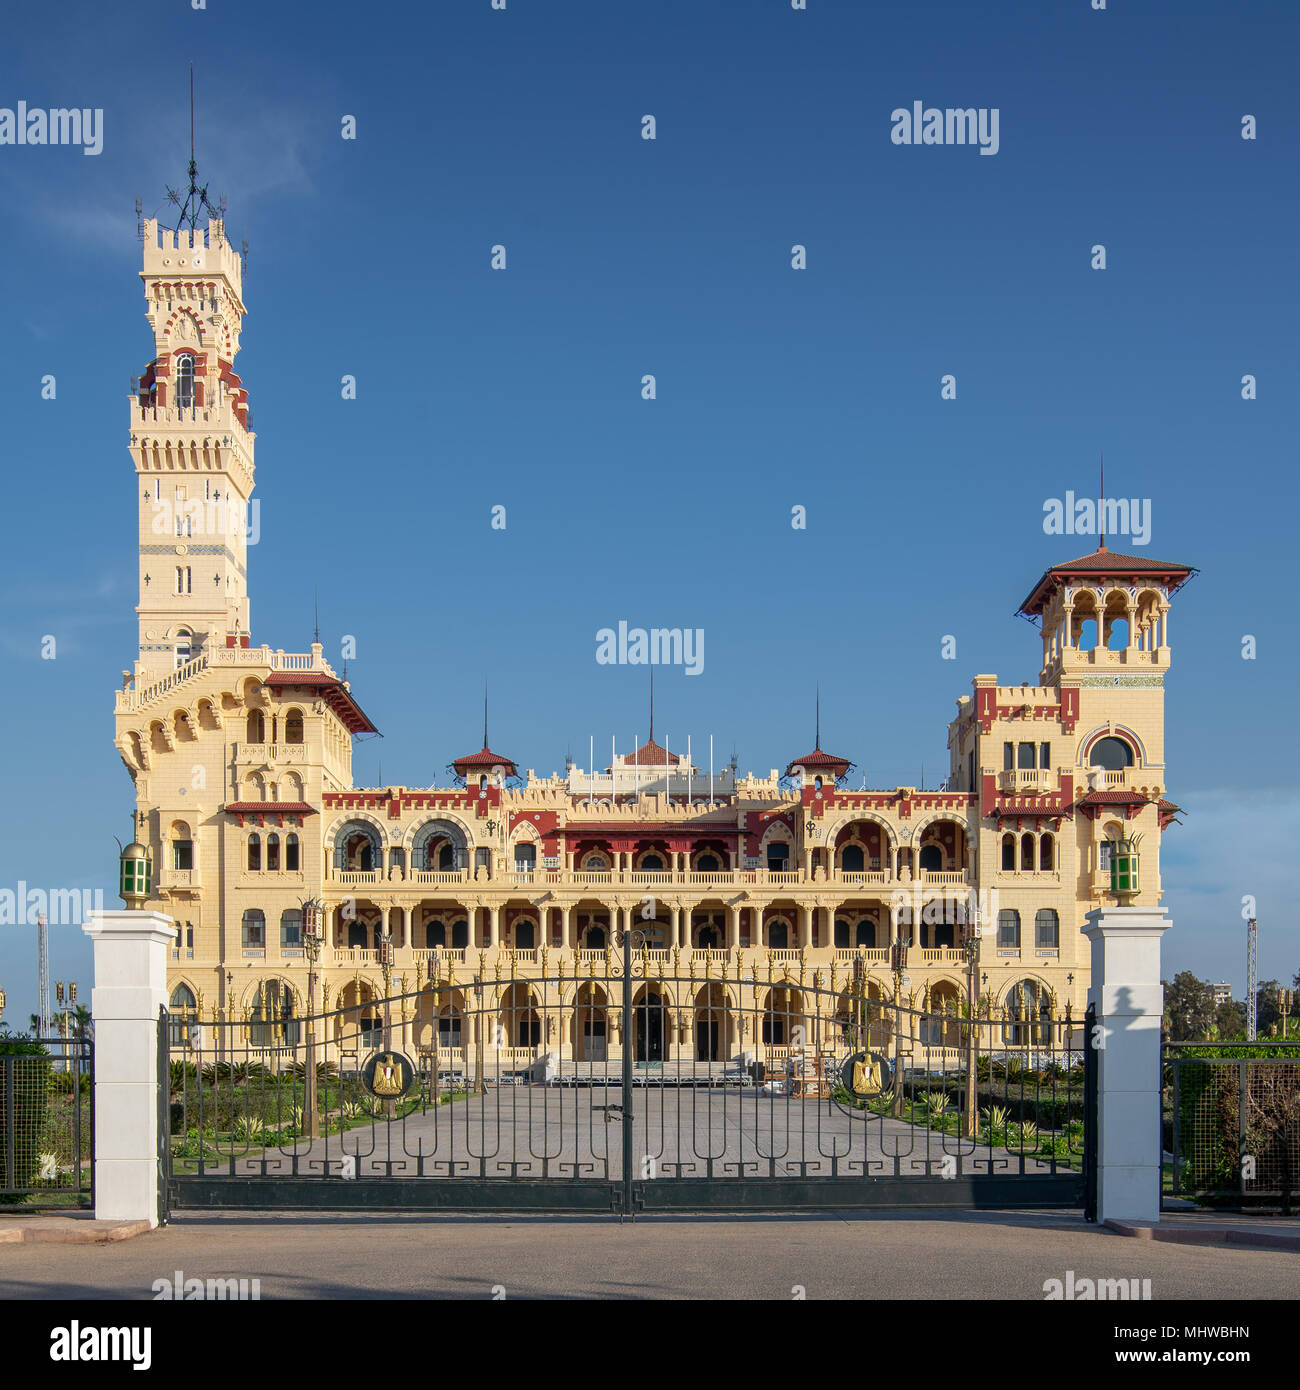 Front view of the royal palace at Montaza public park before sunset, Alexandria, Egypt - Stock Image